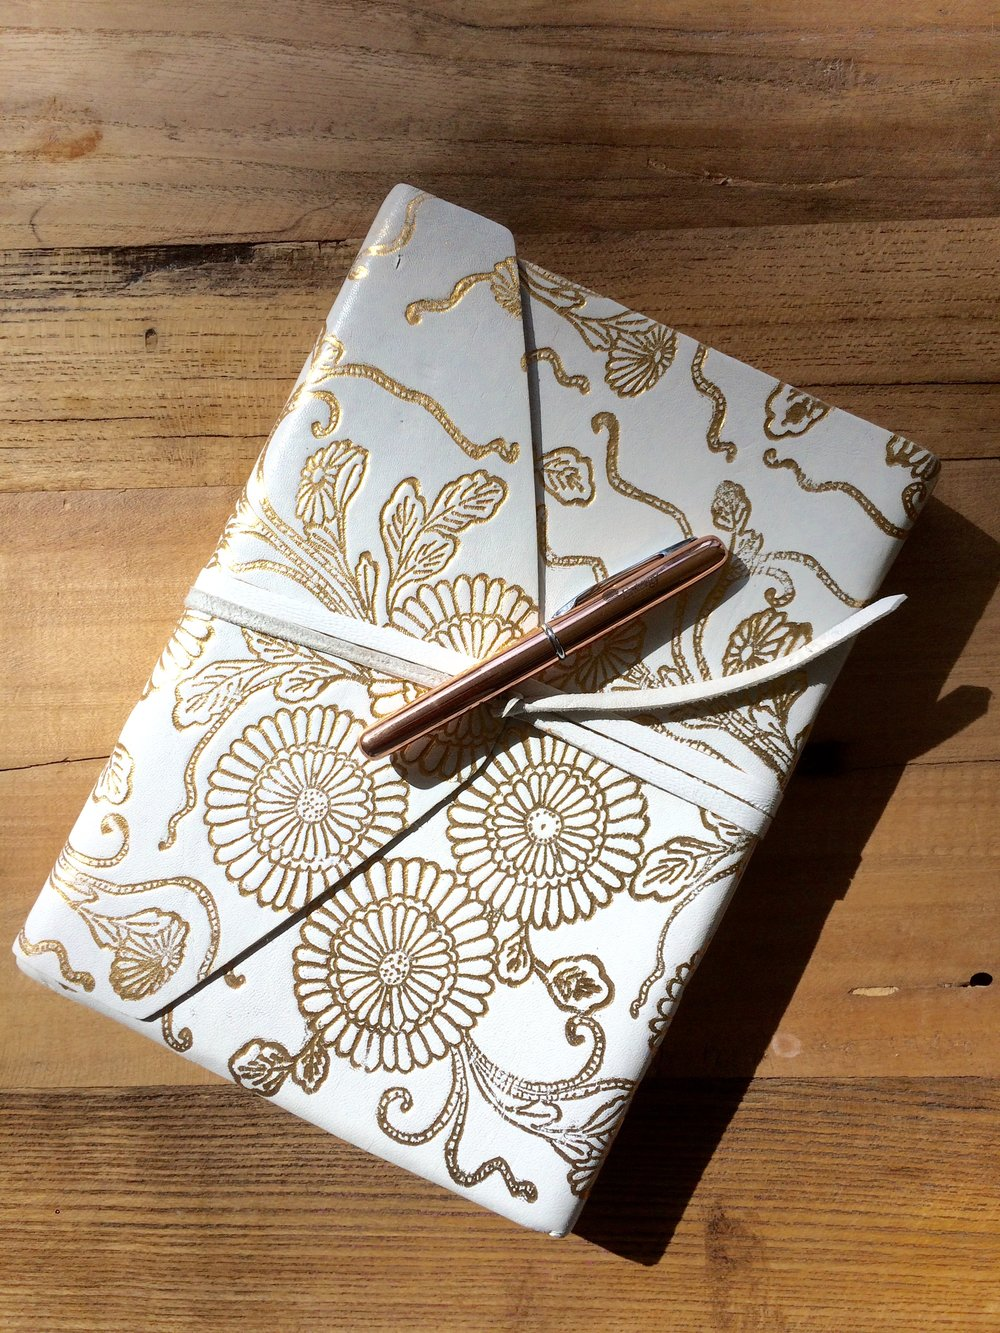 My travel journal. Purchased at Anthropologie.